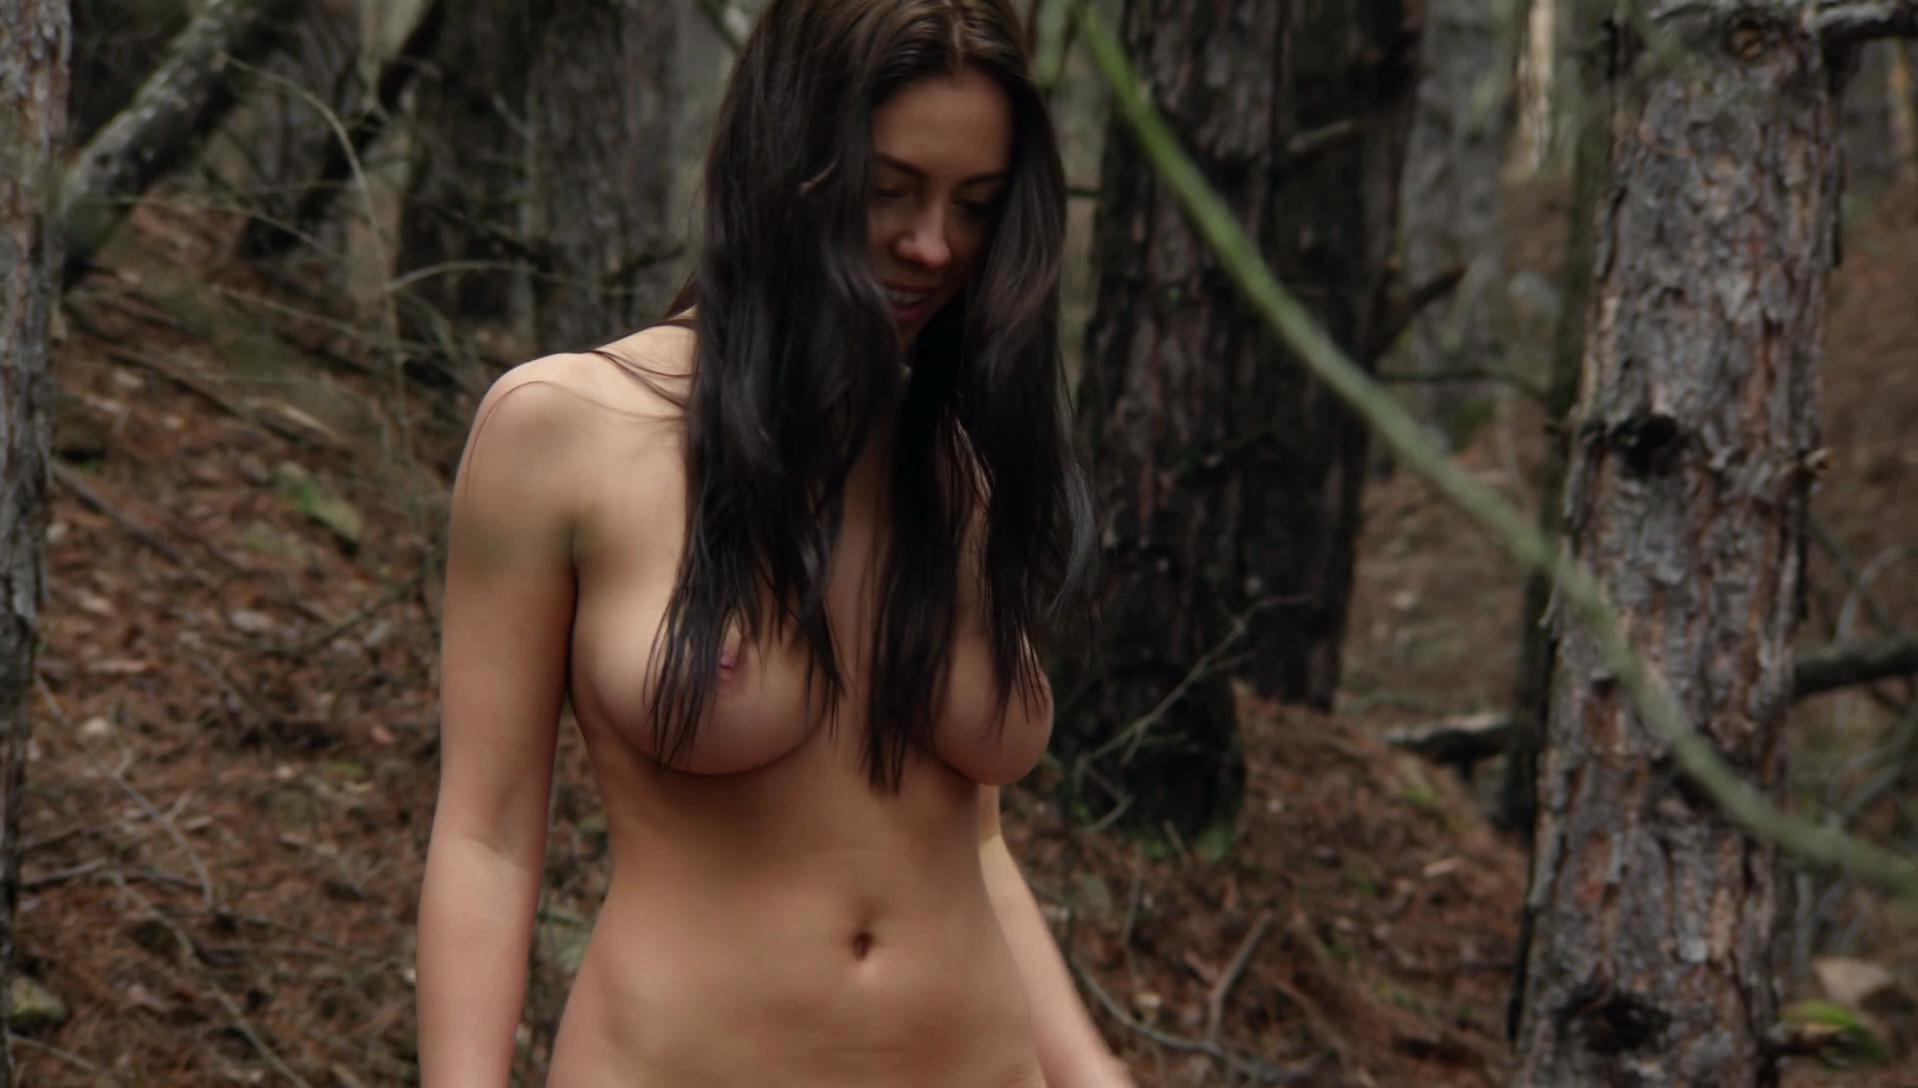 Talitha Luke-Eardley nude - Wrong Turn 6 (2014)